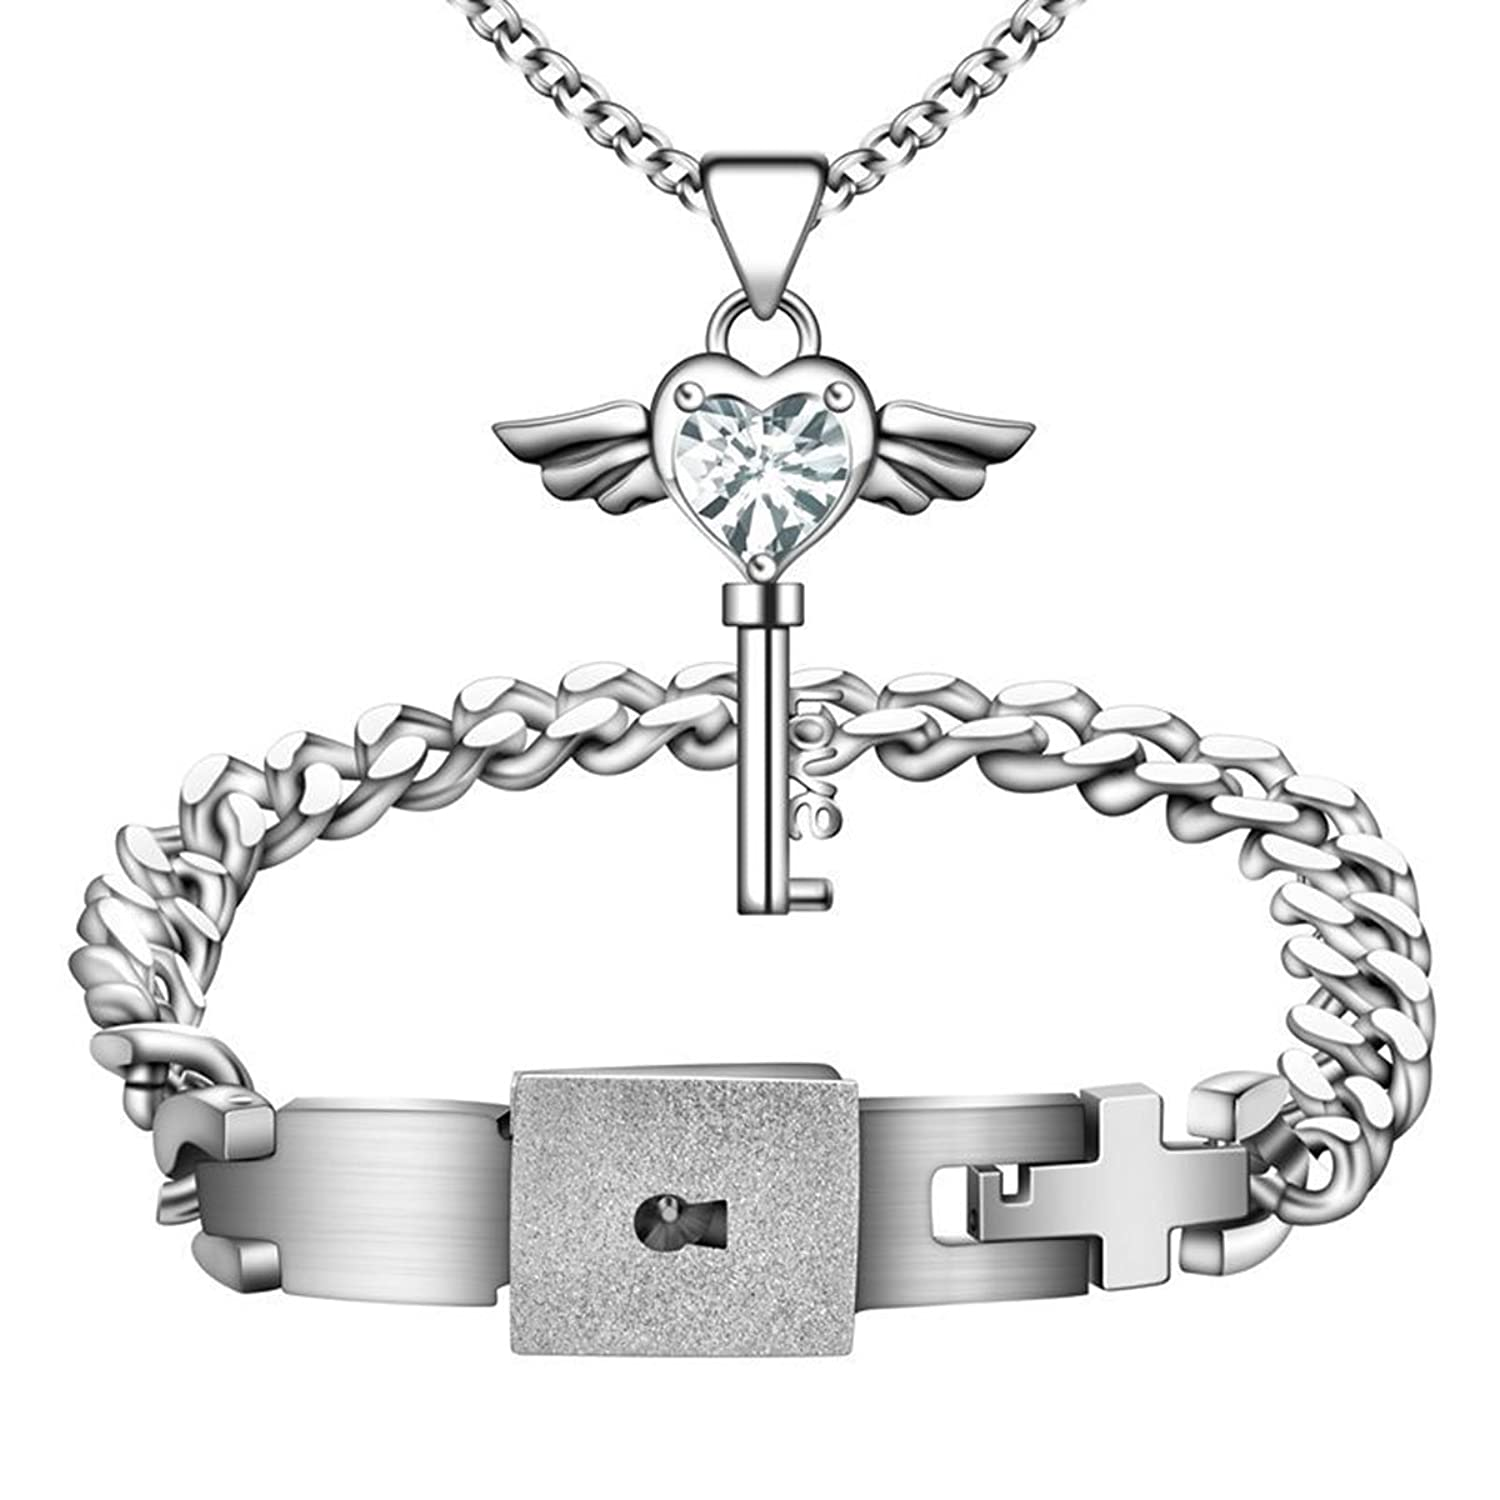 Key lock necklace images aloadofball Image collections